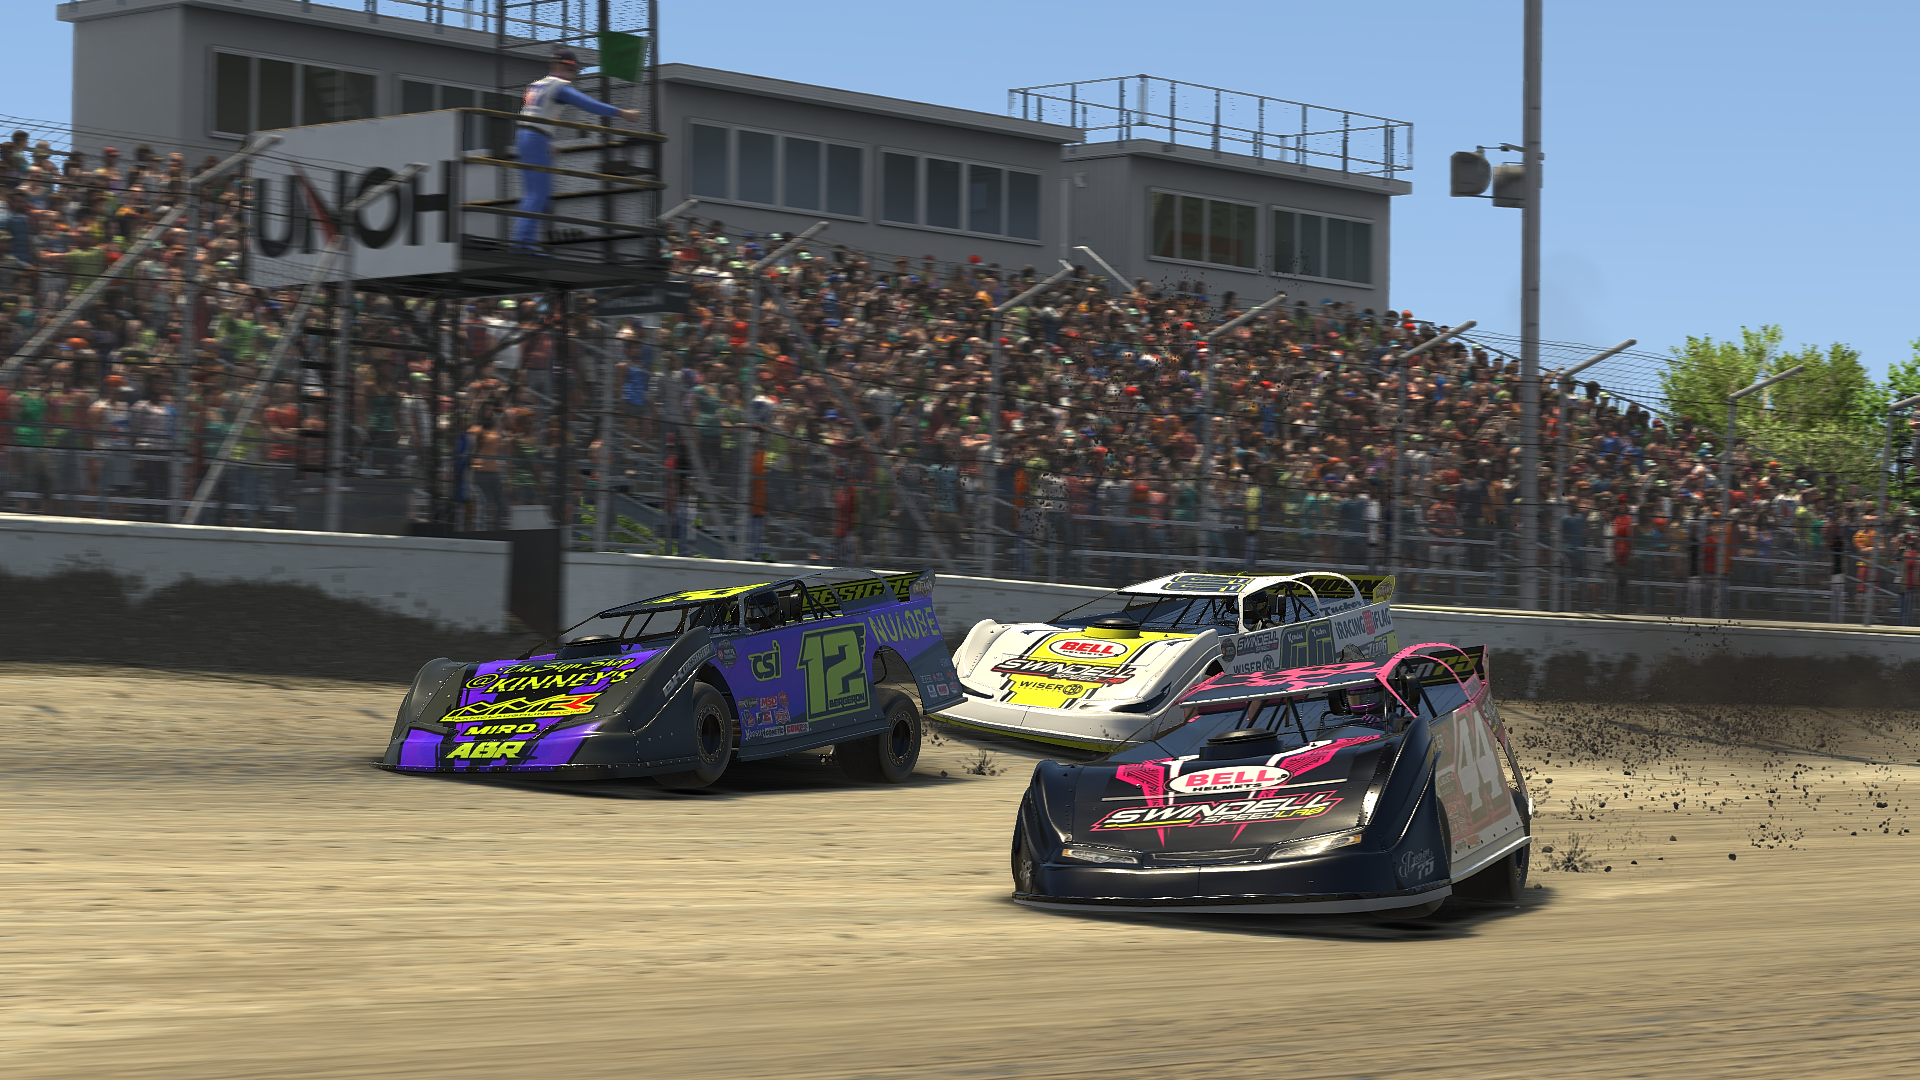 Preview: iRacing World of Outlaws series